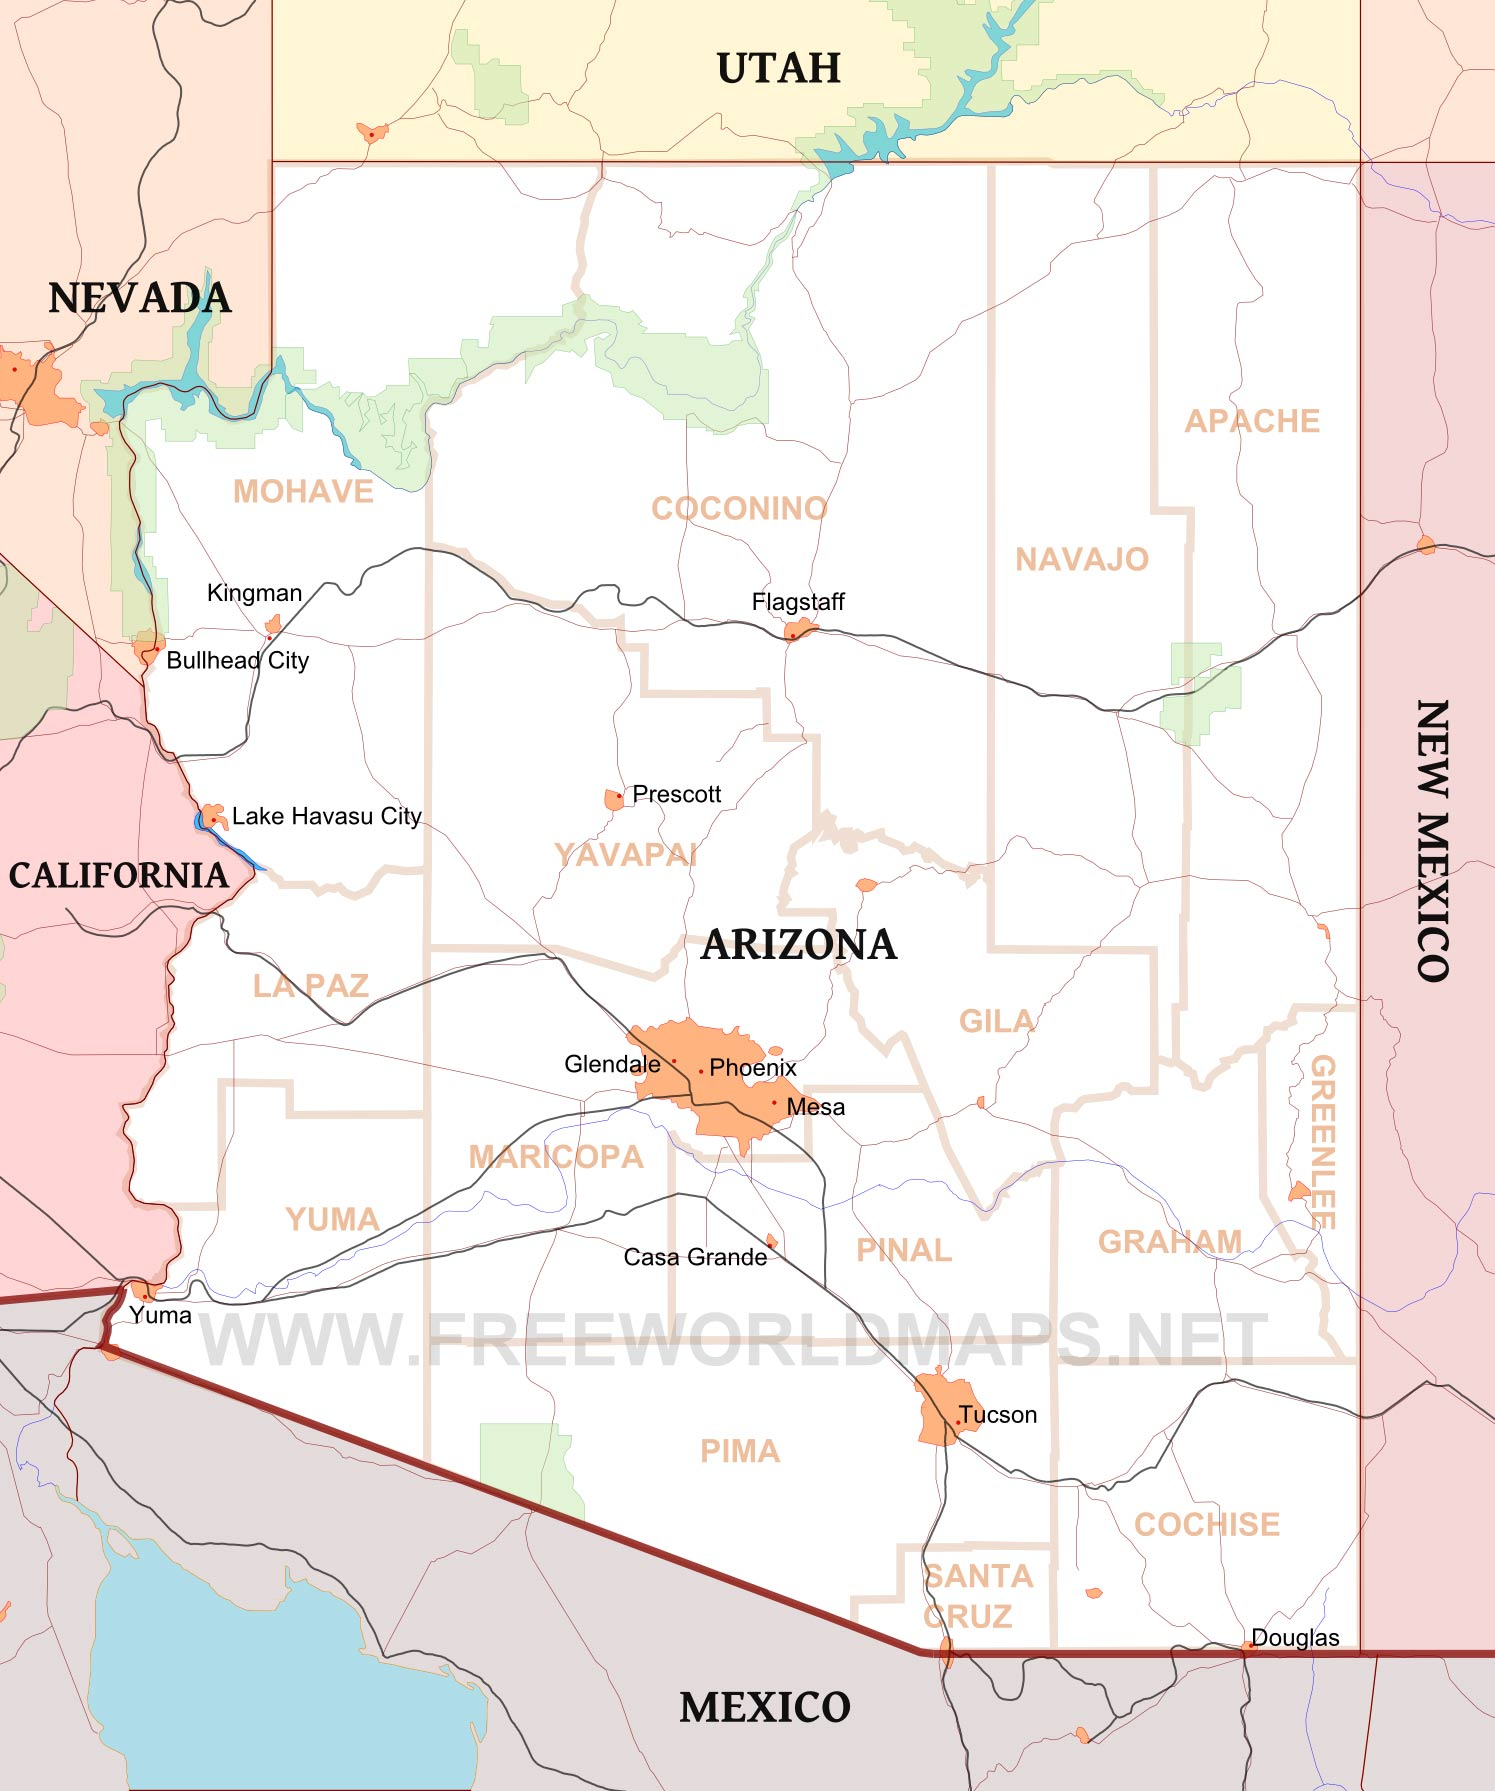 Arizona Maps - Arizona map